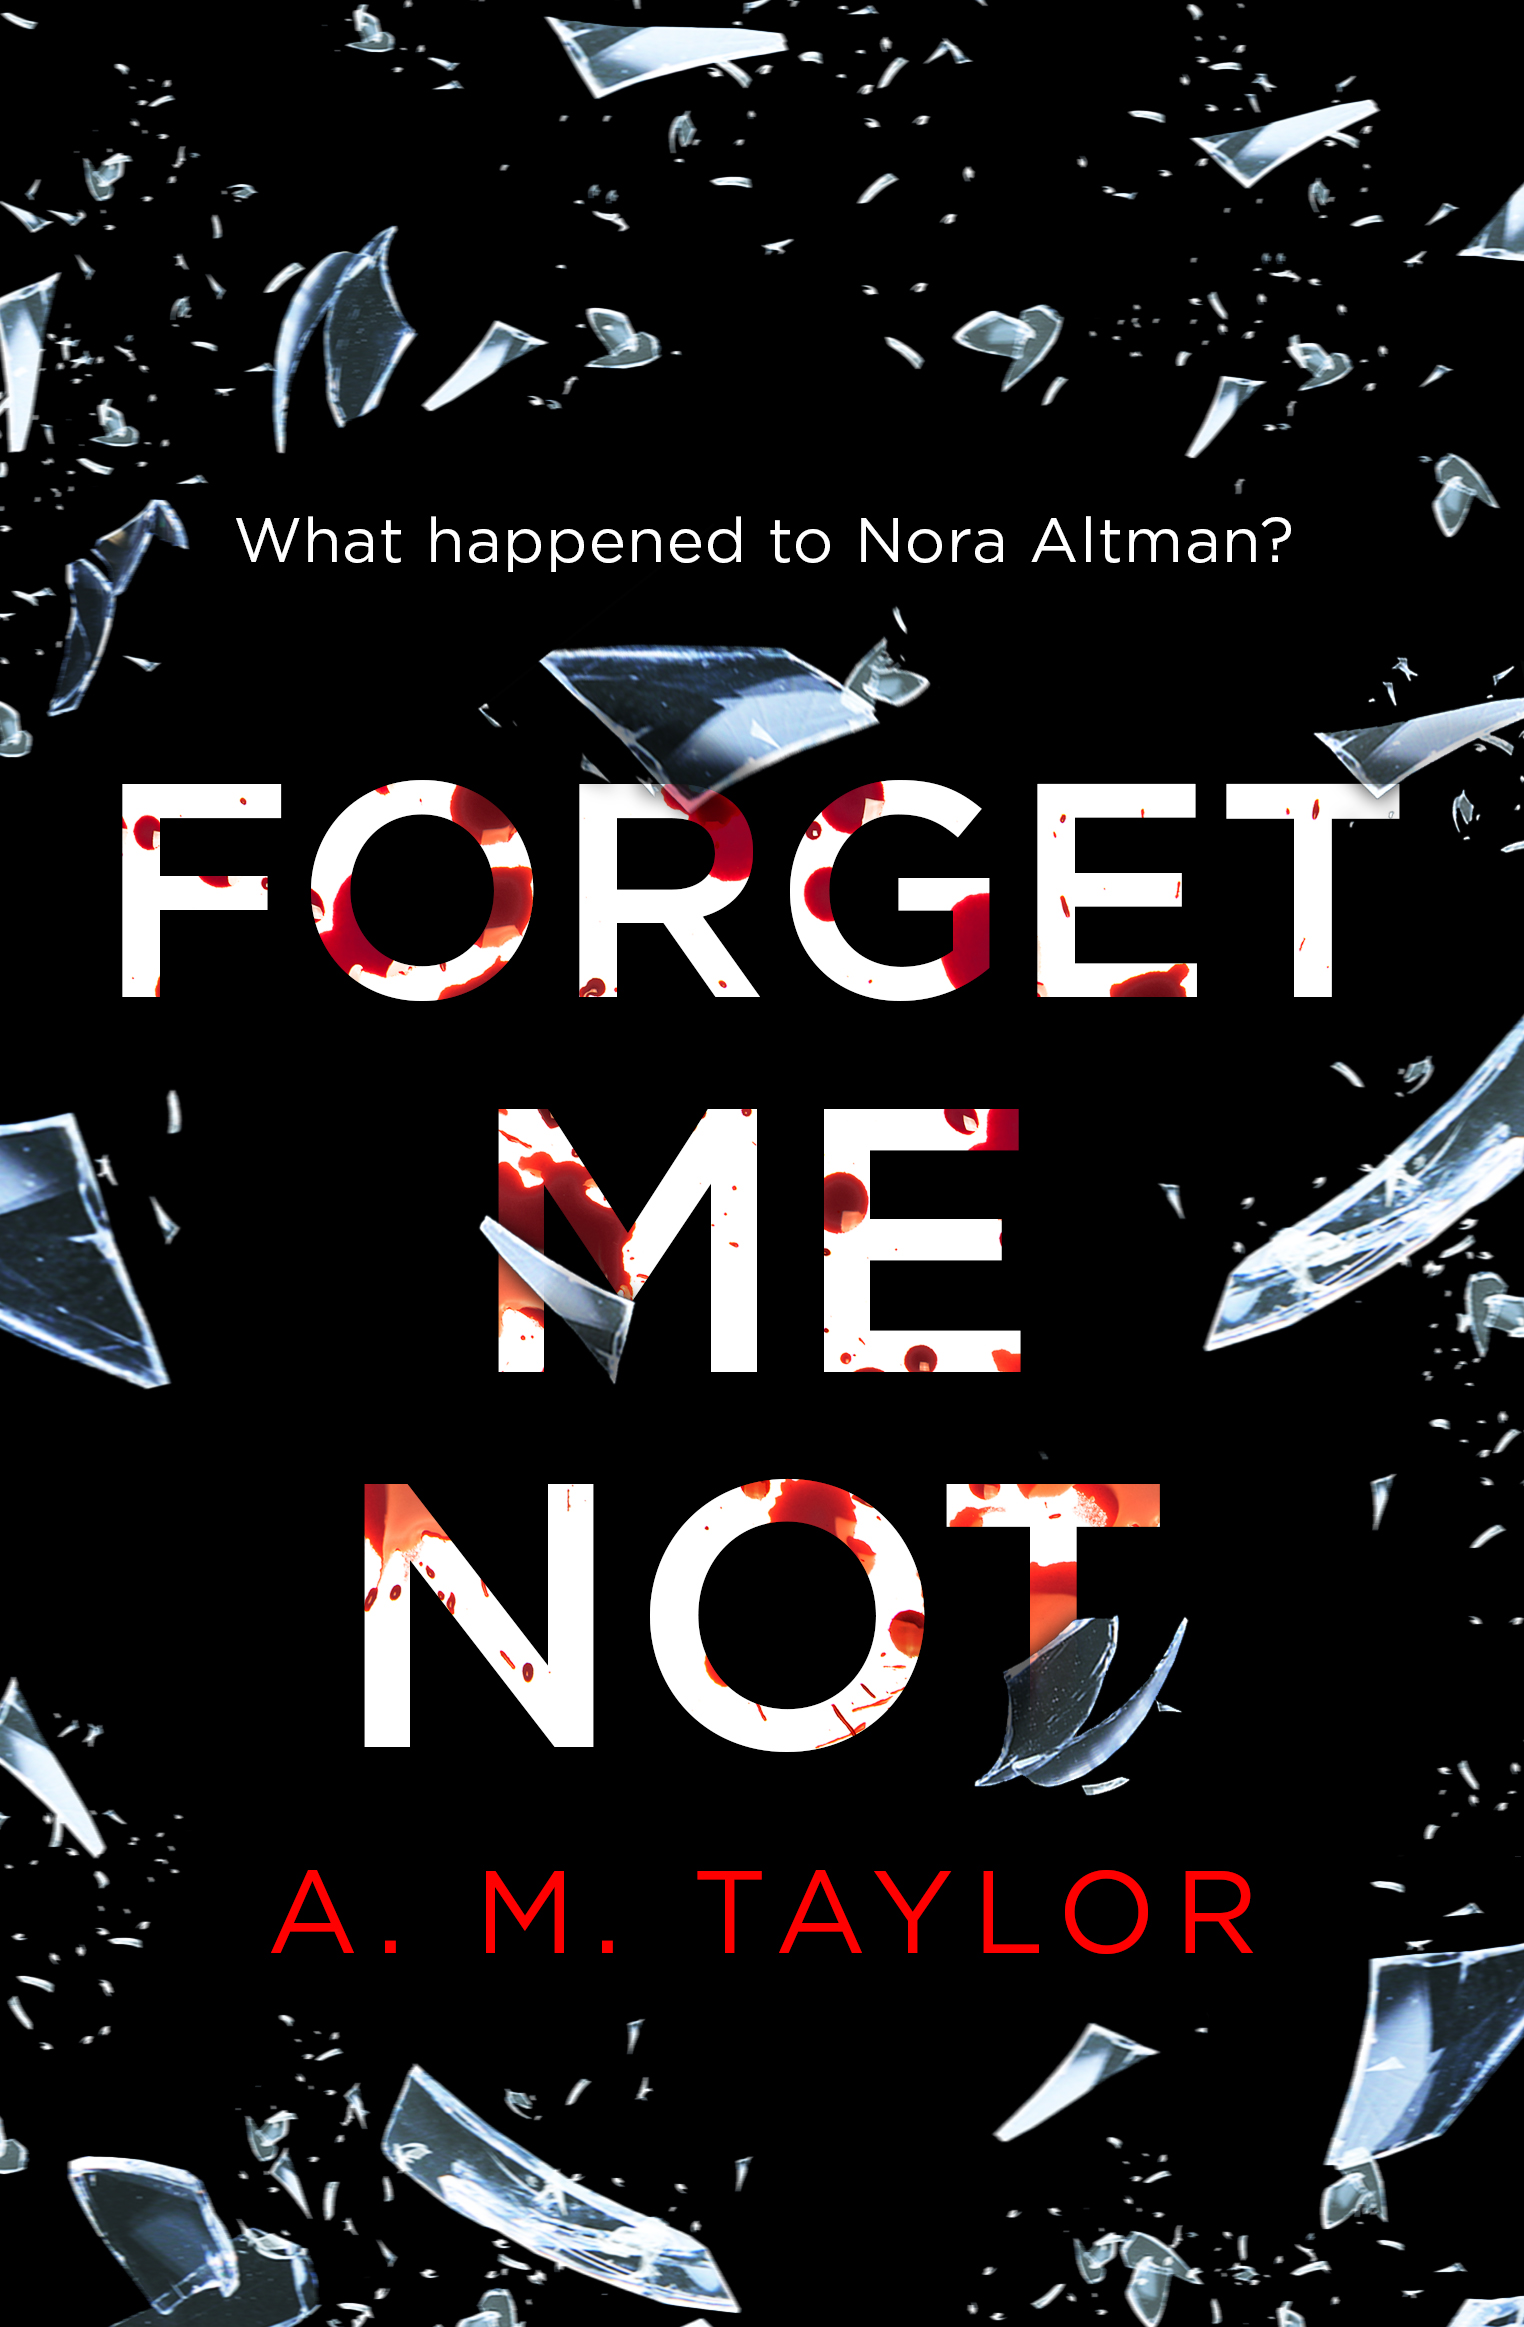 Forget Me Not - An exciting debut psychological thriller perfect for fans of Clare Mackintosh, Liane Moriarty and Lisa Jewell.WHAT HAPPENED TO NORA ALTMAN?When Maddie met Nora, their friendship felt as easy as breathing. And when Nora disappeared, all the air went with her. Without her best friend, Maddie's life became impossible.Ten years later, Nora is still missing and Maddie is still searching. People have been questioned. People have even been accused. But no one has managed to find Nora.Then, in the same spot where Nora went missing, the murdered body of Nora's little sister is found. Convinced this is no coincidence, Maddie resolves to uncover the killer and find Nora – dead or alive.But will she be able to cope, when we learn what really happened to Nora…?Out now